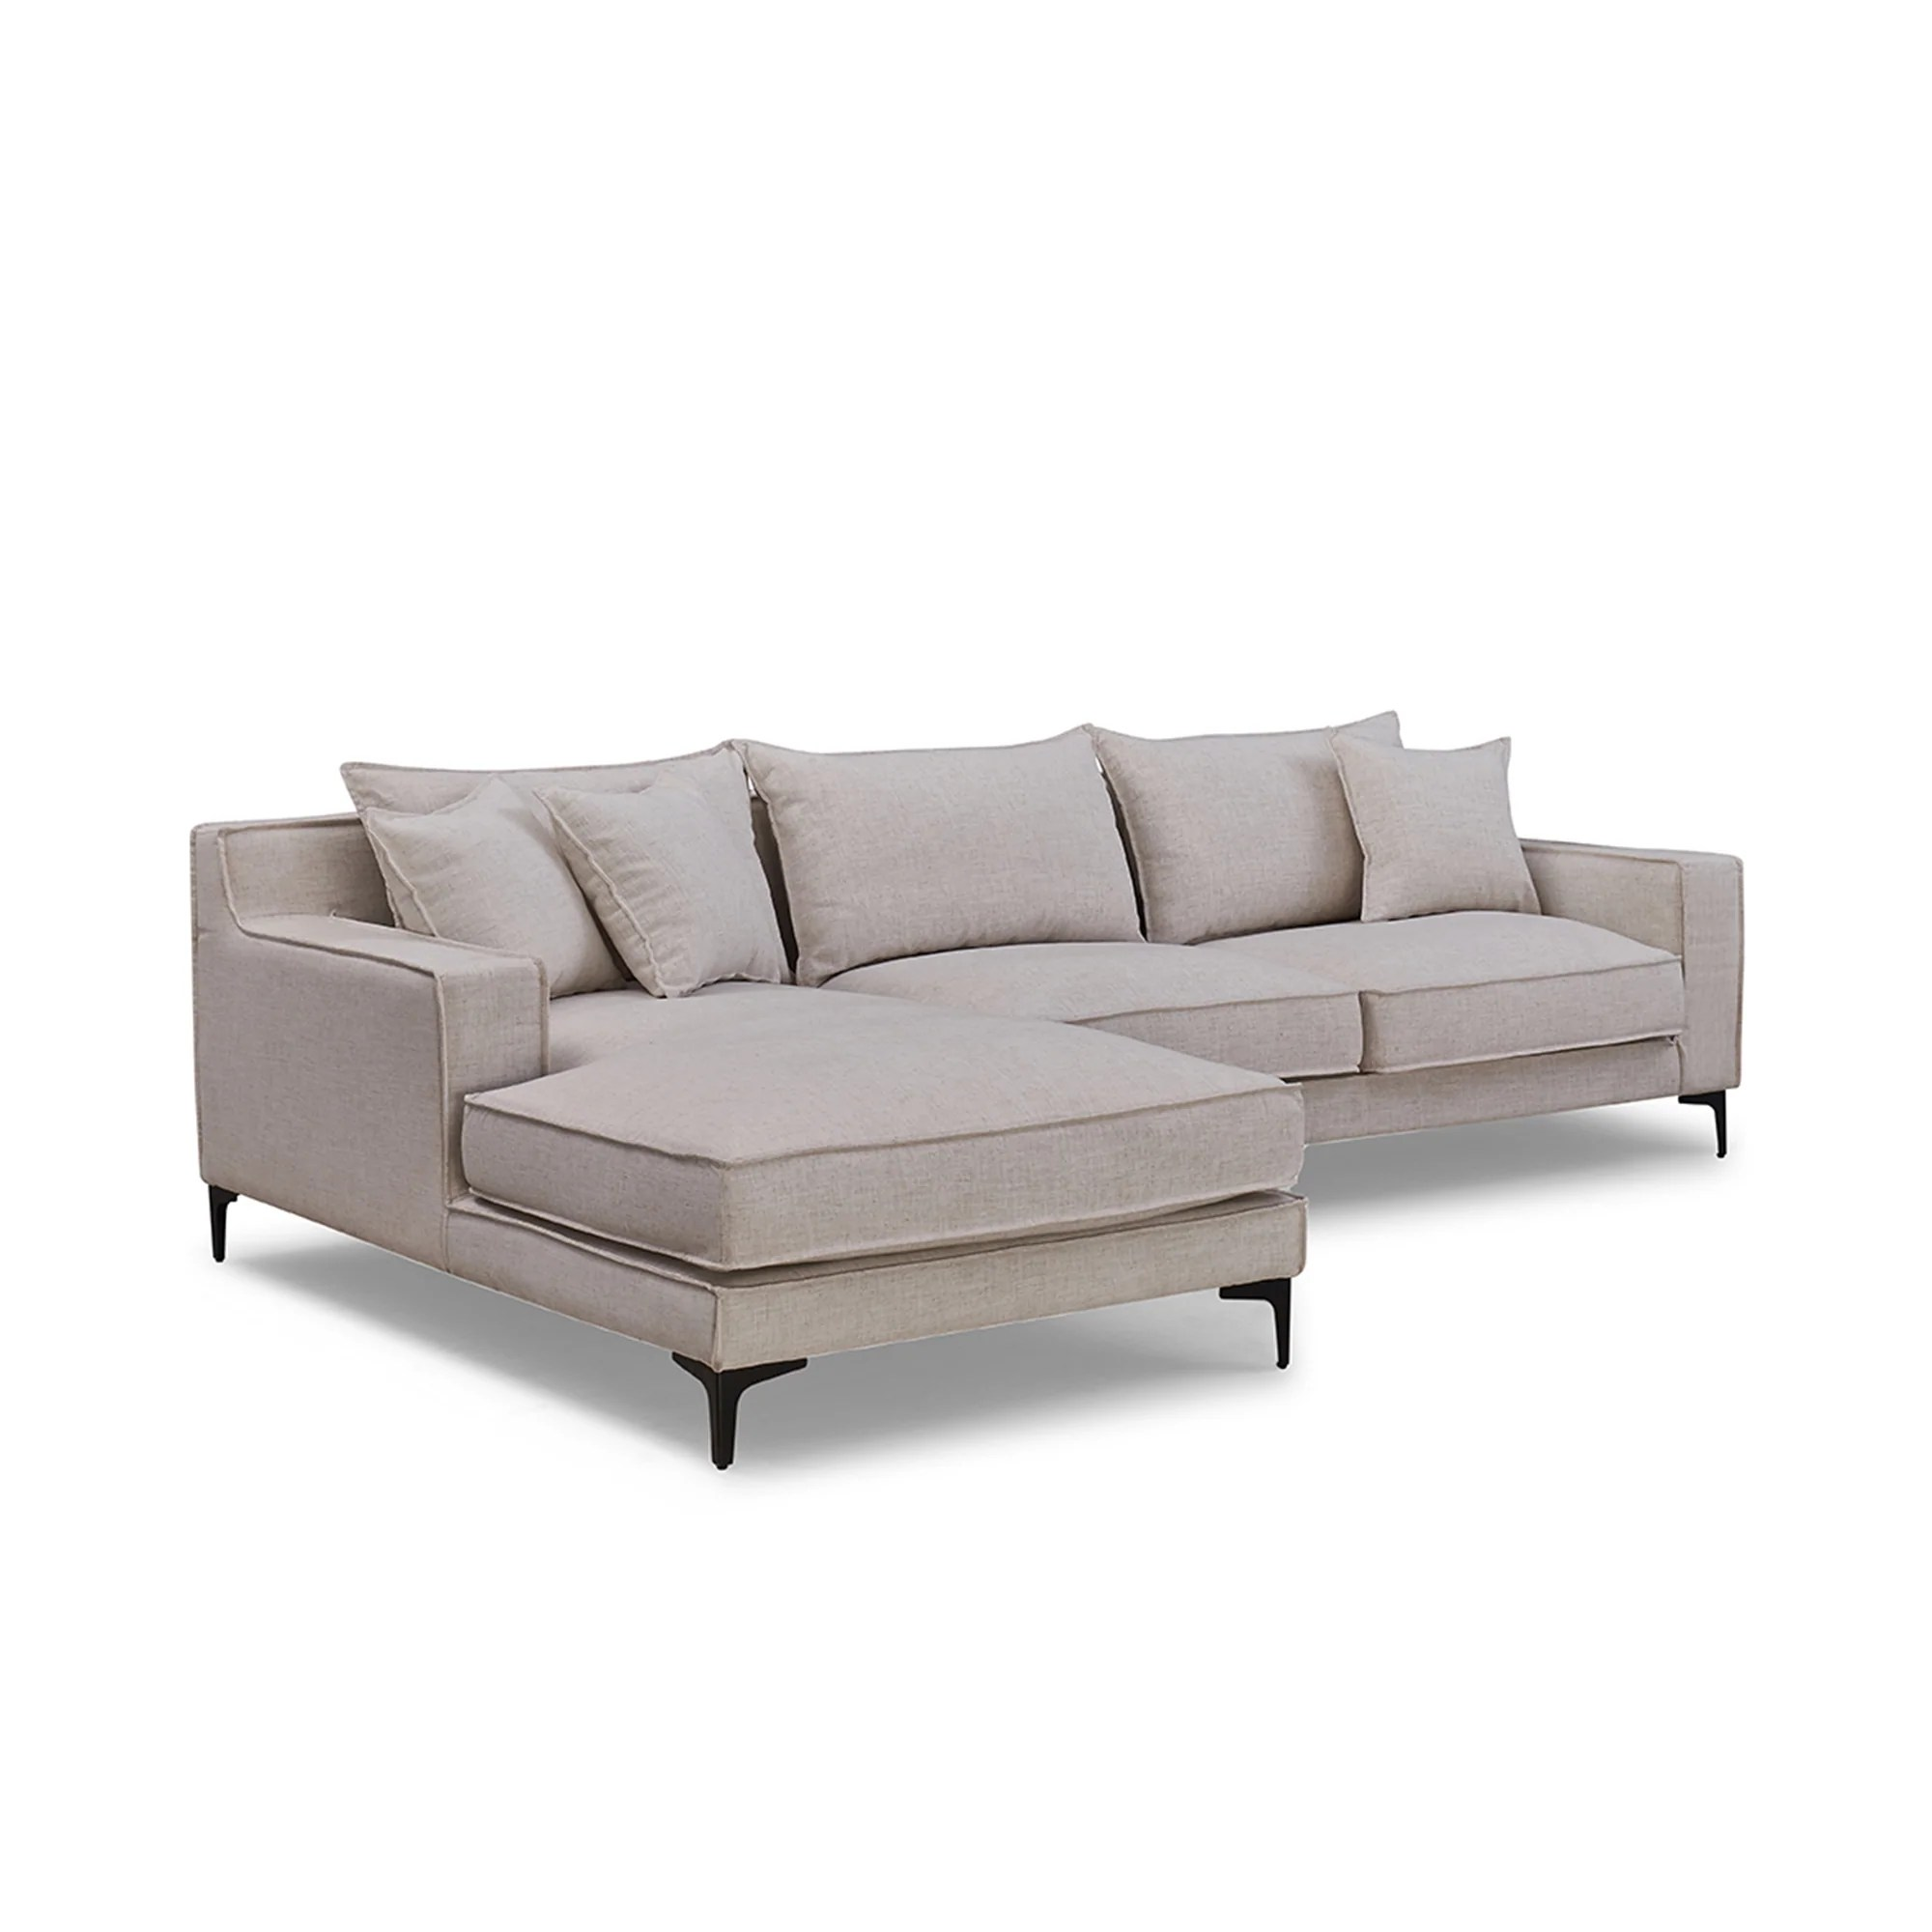 Kayden Right Side L Shaped Modular Sofa Bois Cuir